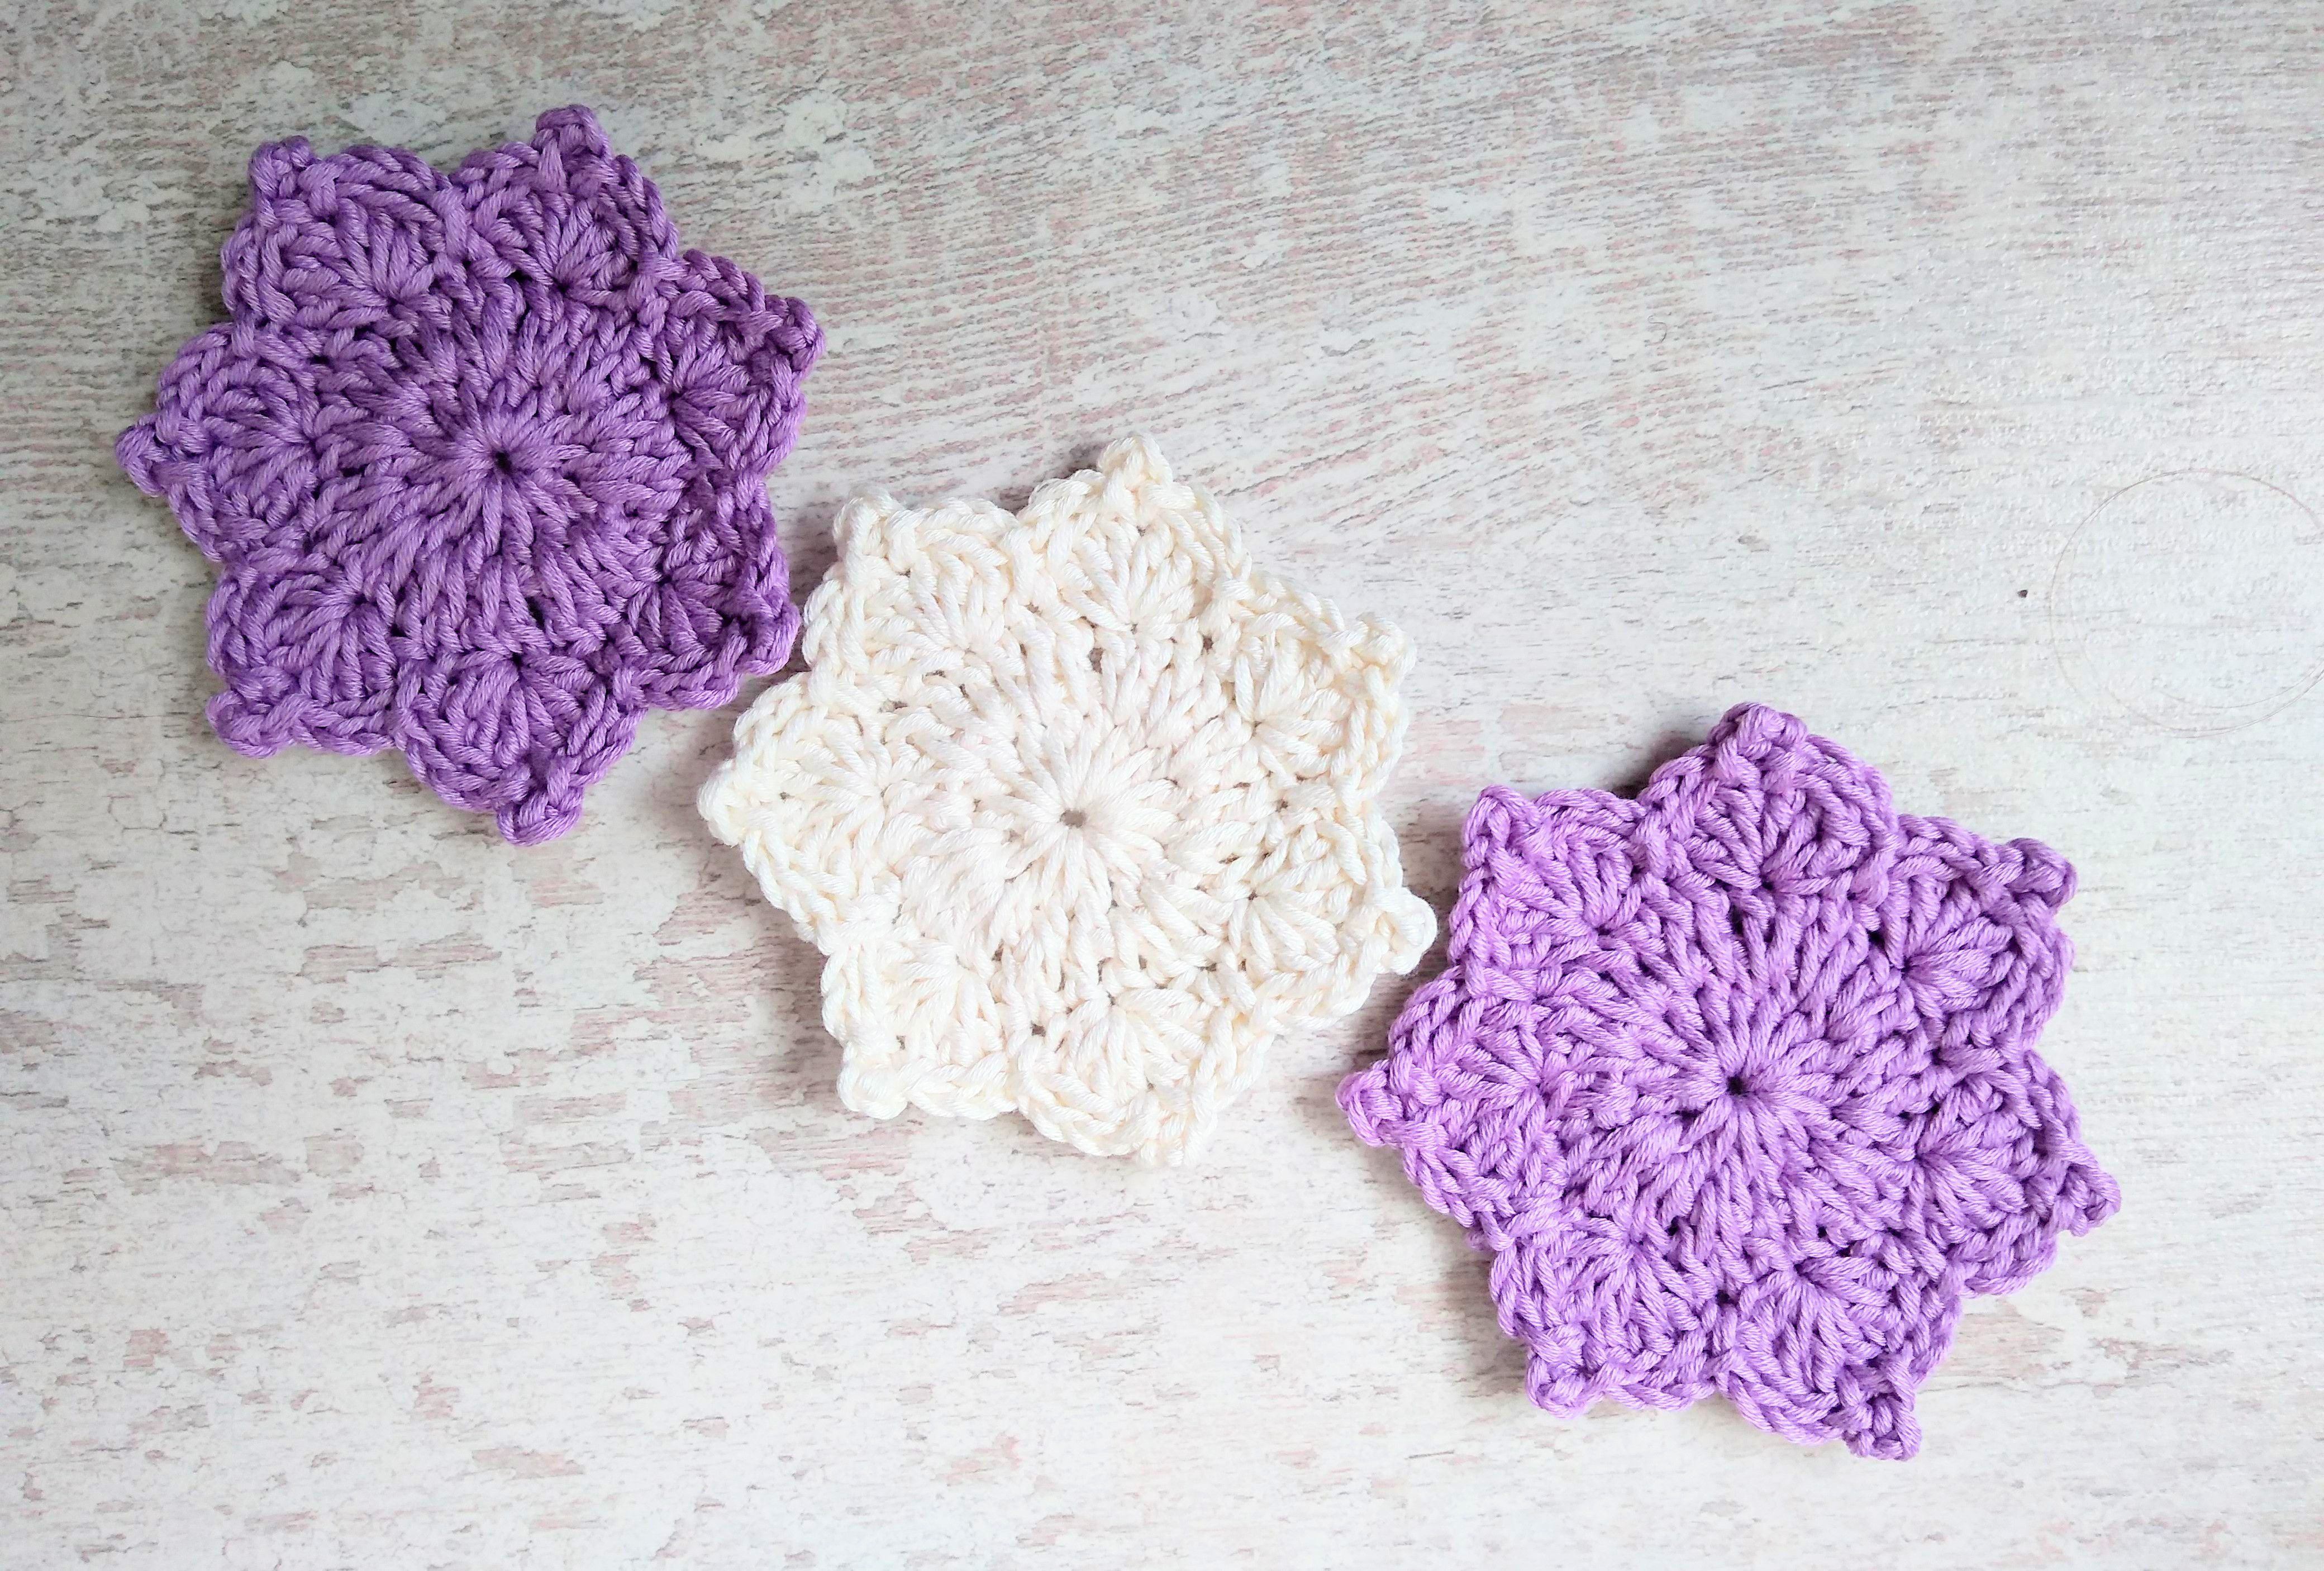 friendly pads scrubbies exfoliate cleanse and cleansing usable pure eco handmade face neck cotton